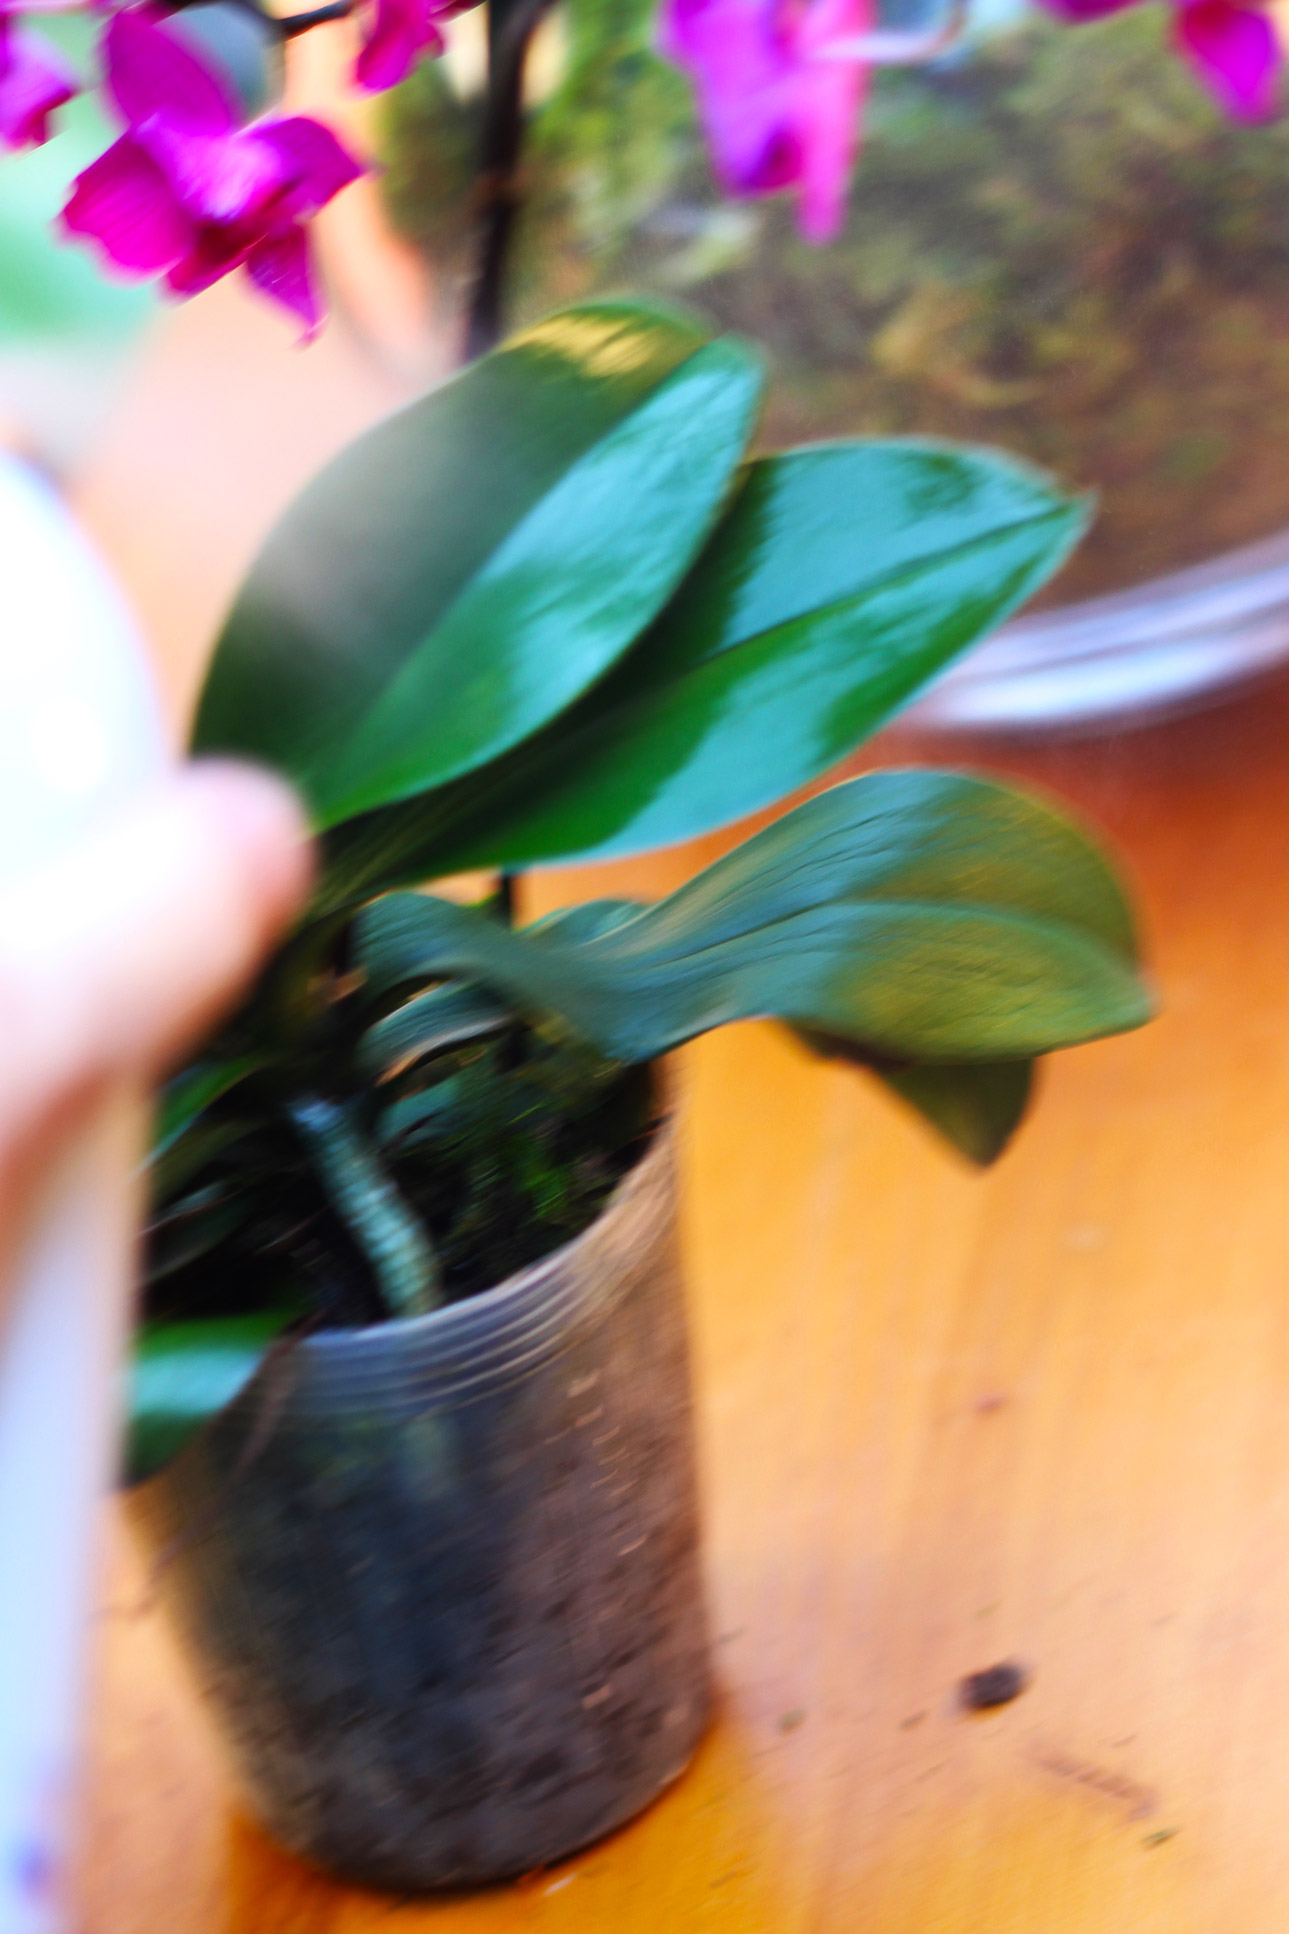 Spray leaves only of orchids. (Spray outside).